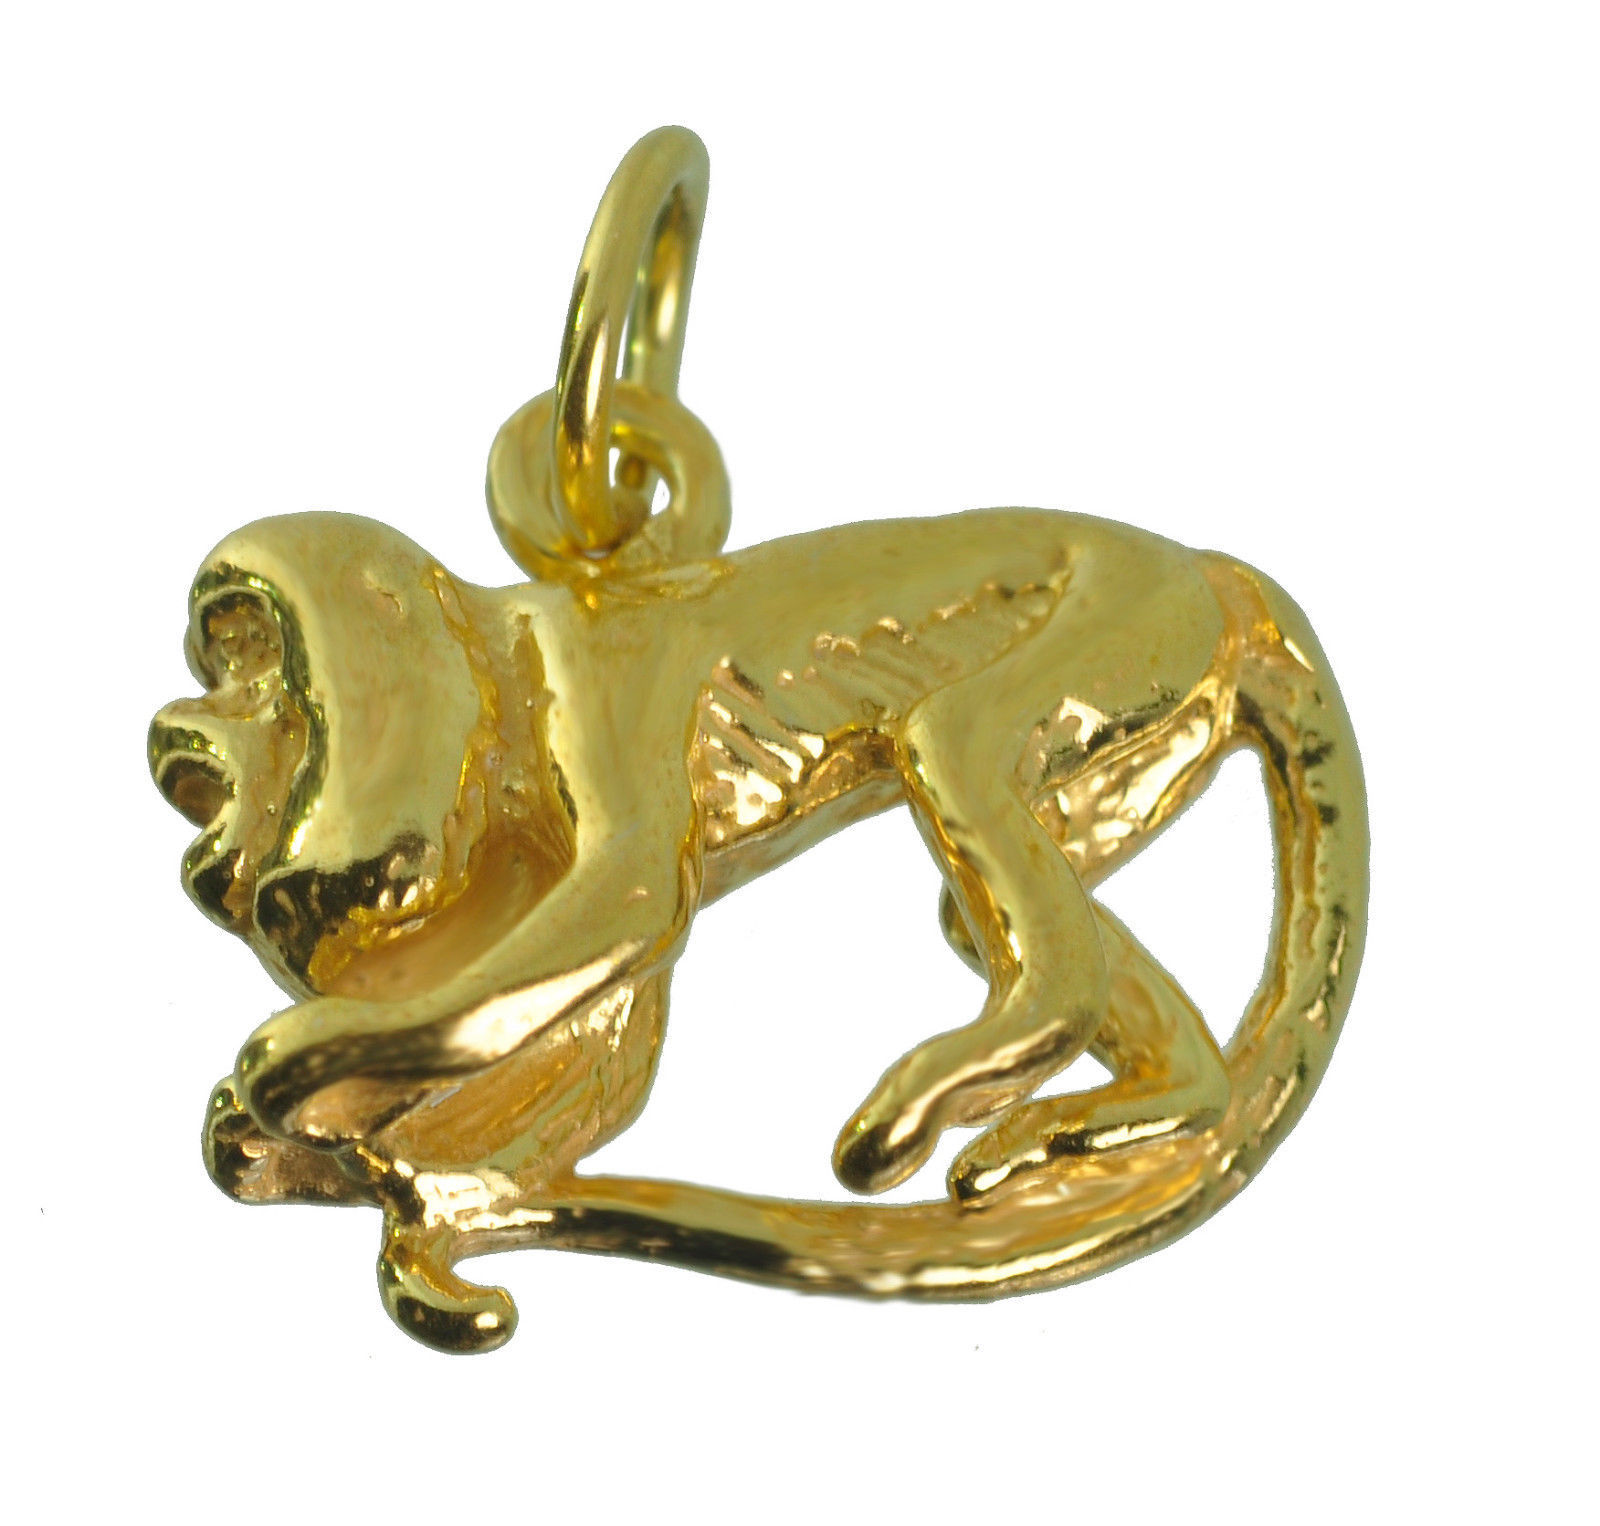 Primary image for New 10K Real Yellow Gold screaming playful capuchin monkey 3D charm Jewelry